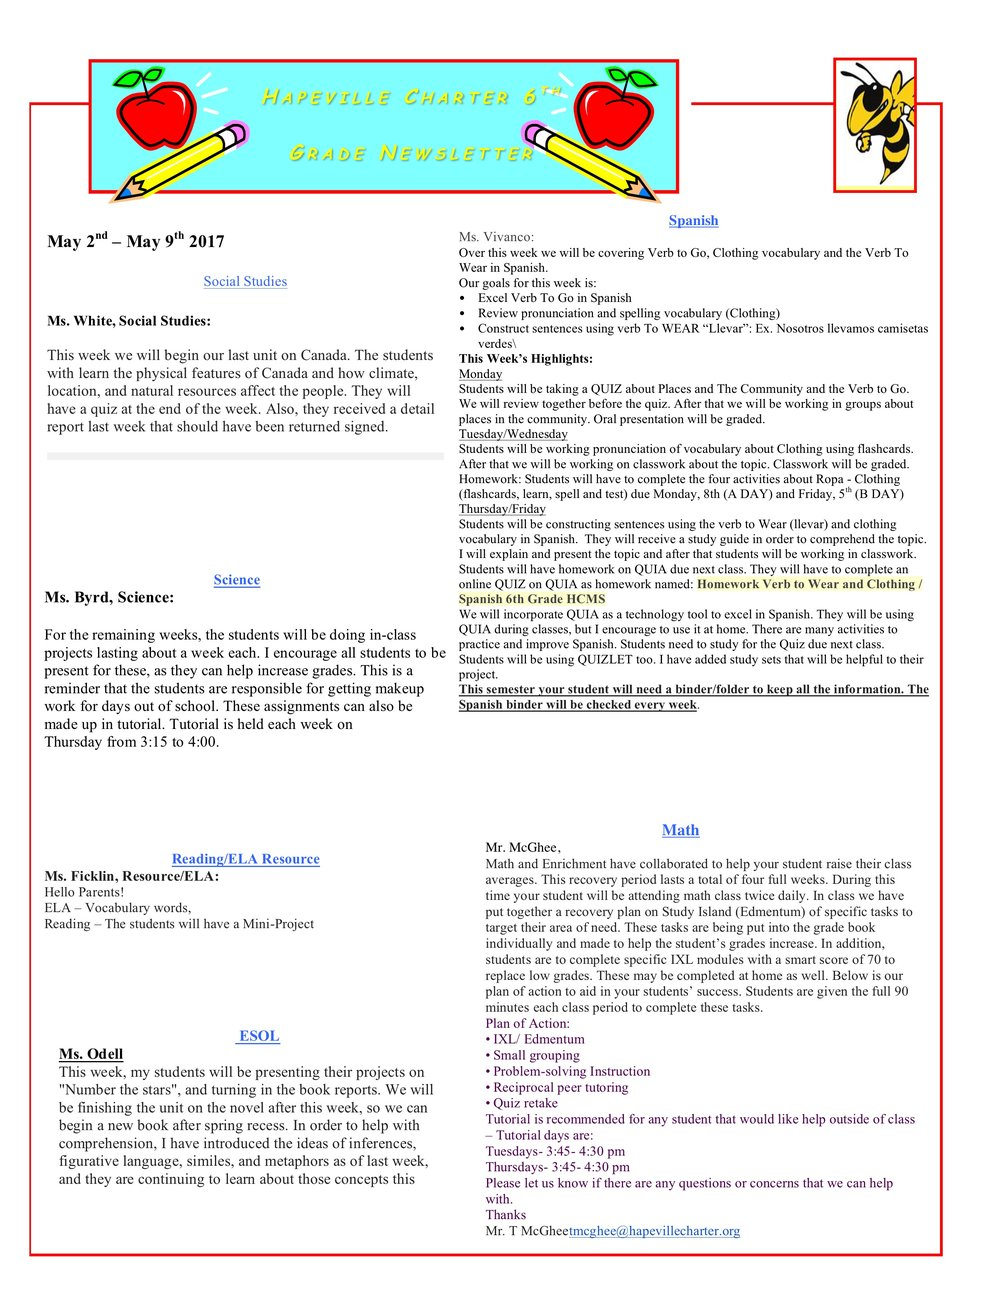 Newsletter Image6th Grade Newsletter 5-1-2017.jpeg